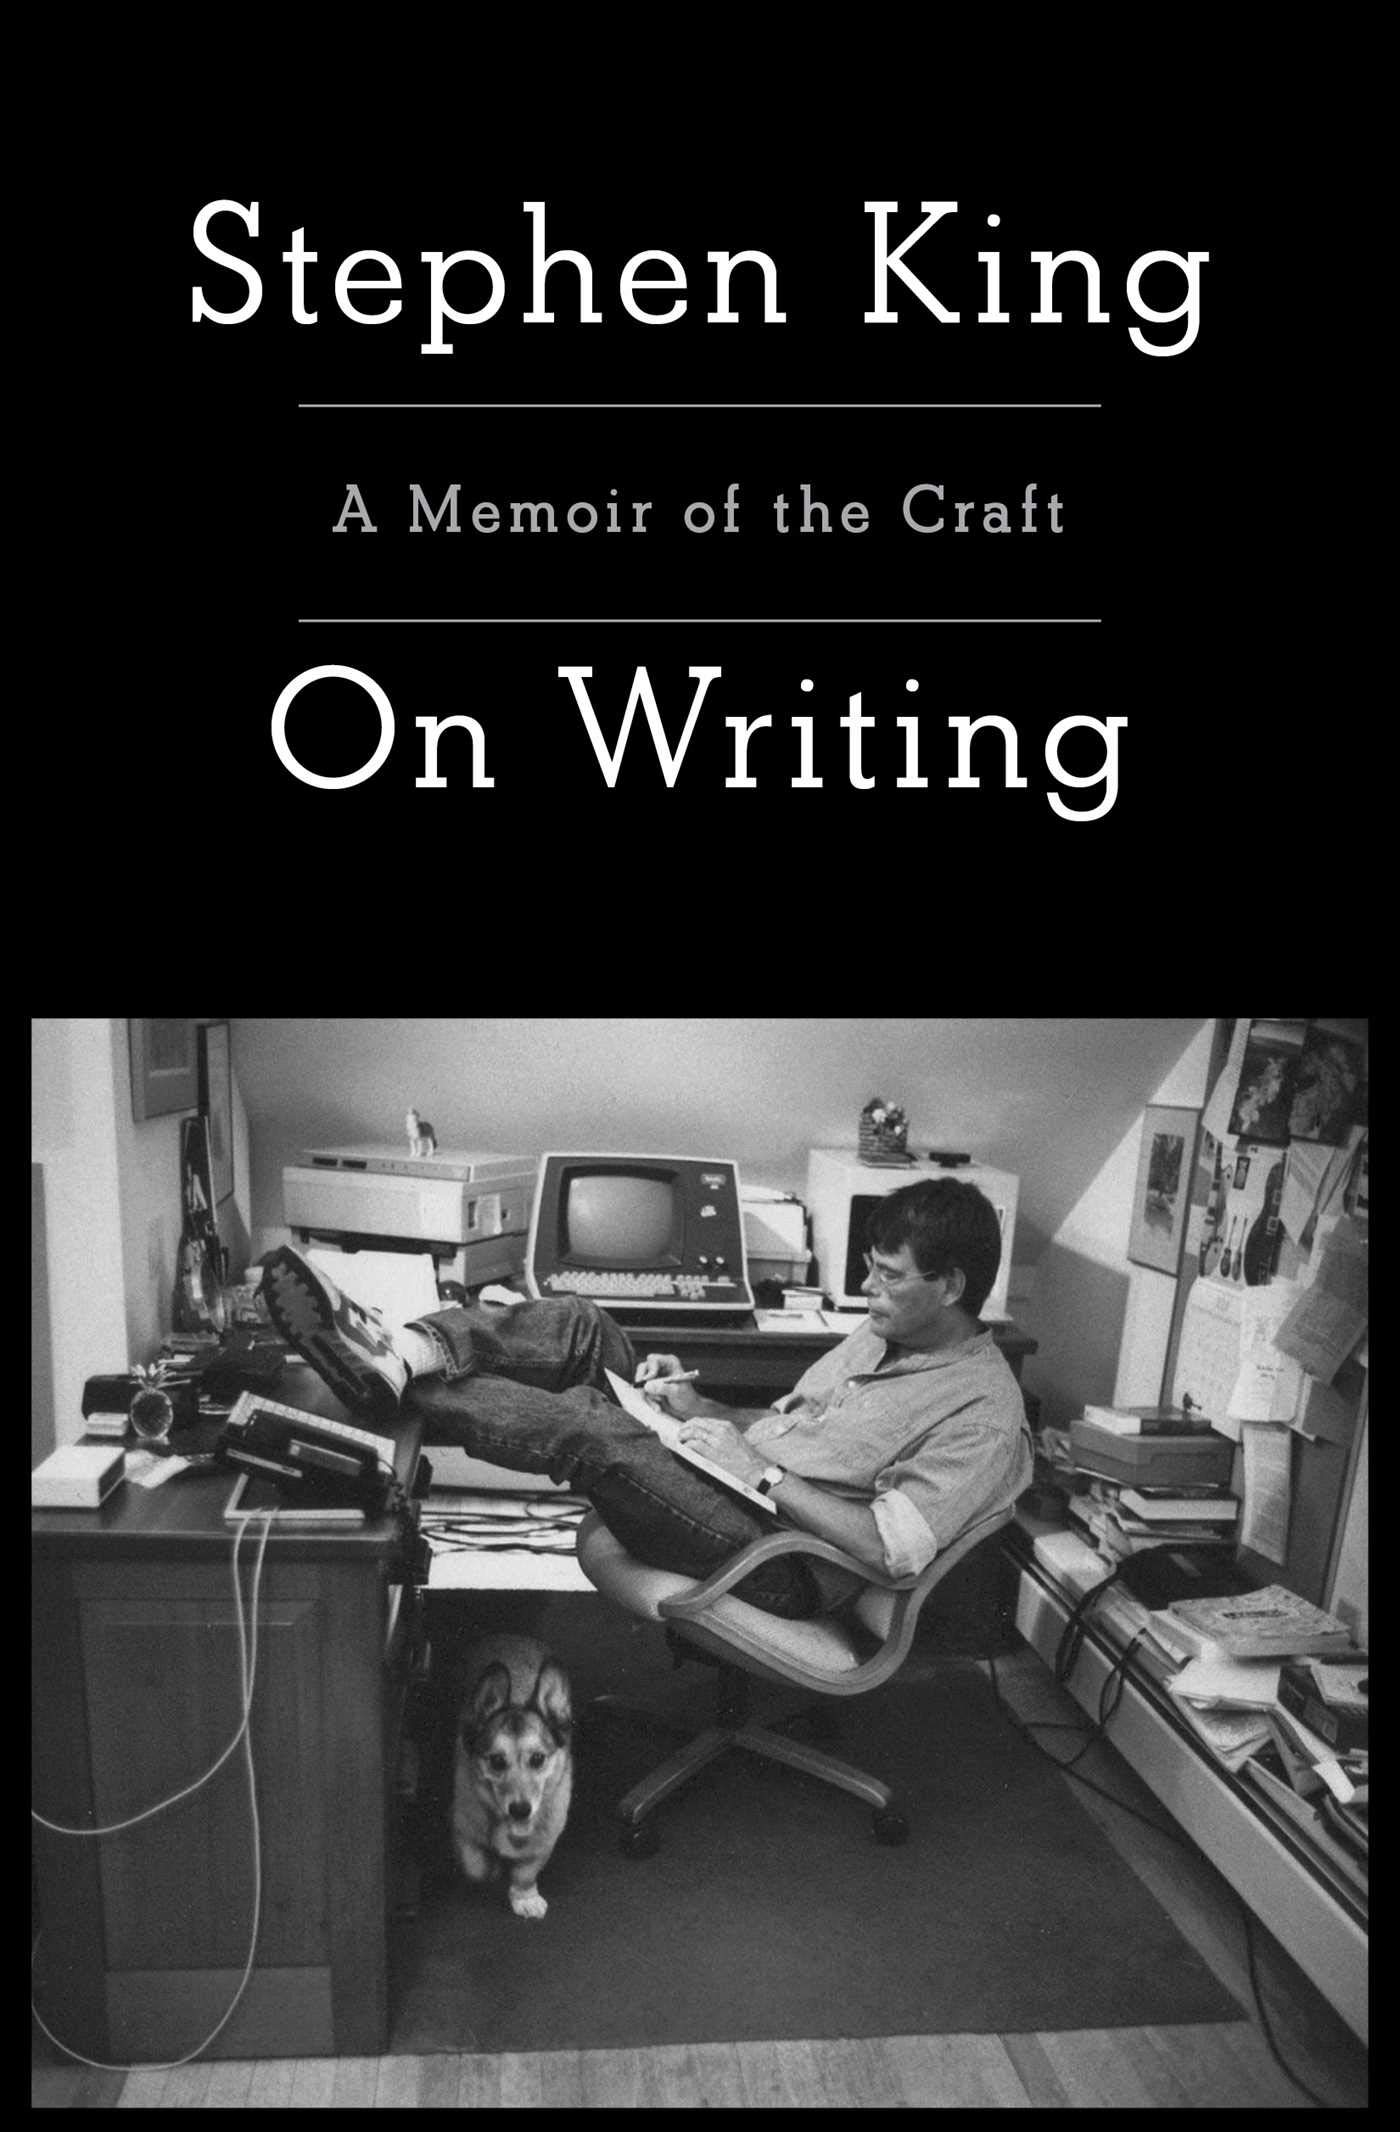 On Writing: A Memoir of the Craft: King, Stephen: 8580001040363 ...